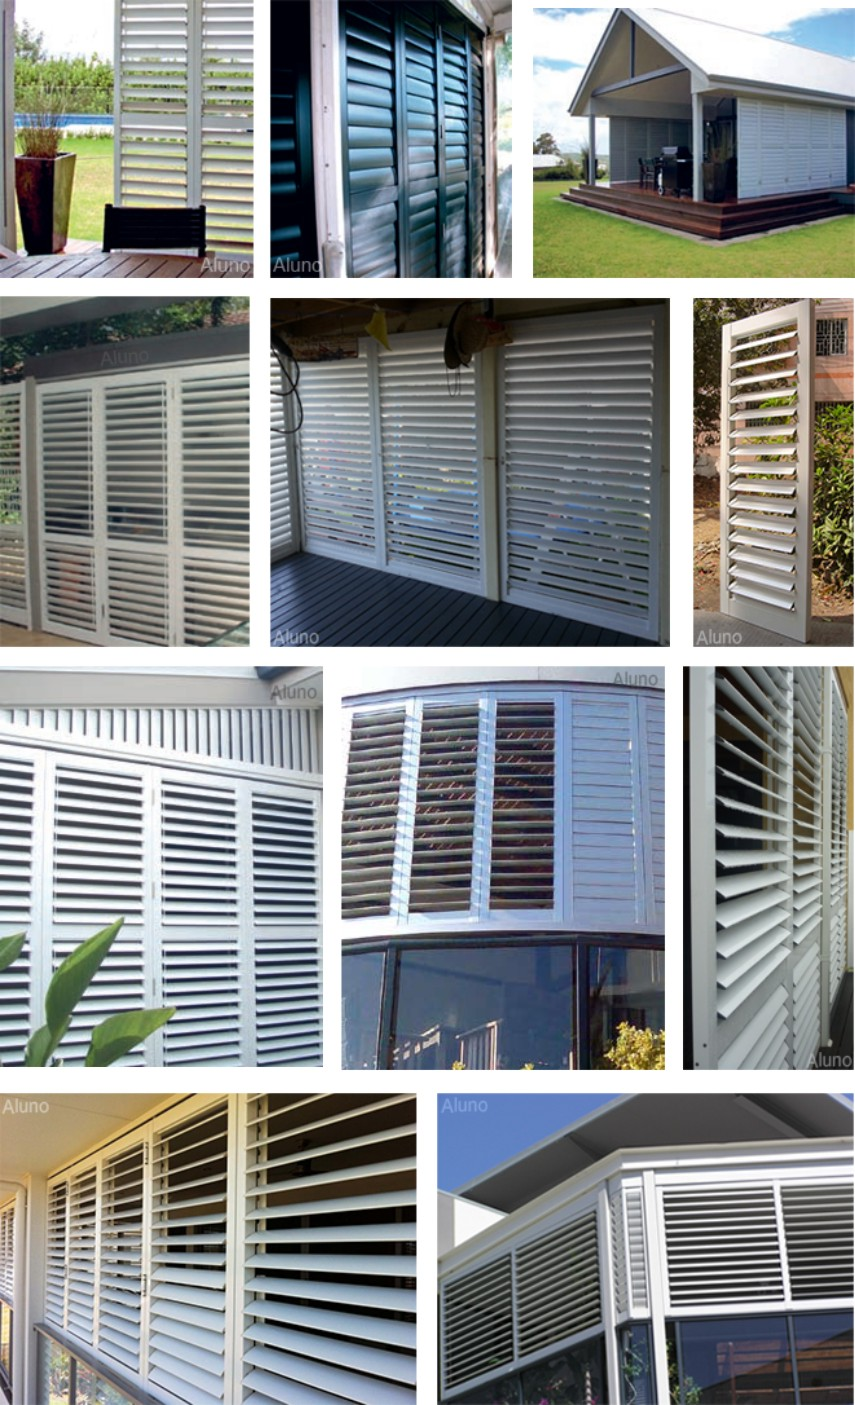 Exterior bi folding aluminium louvered shutters buy - Exterior louvered window shutters ...